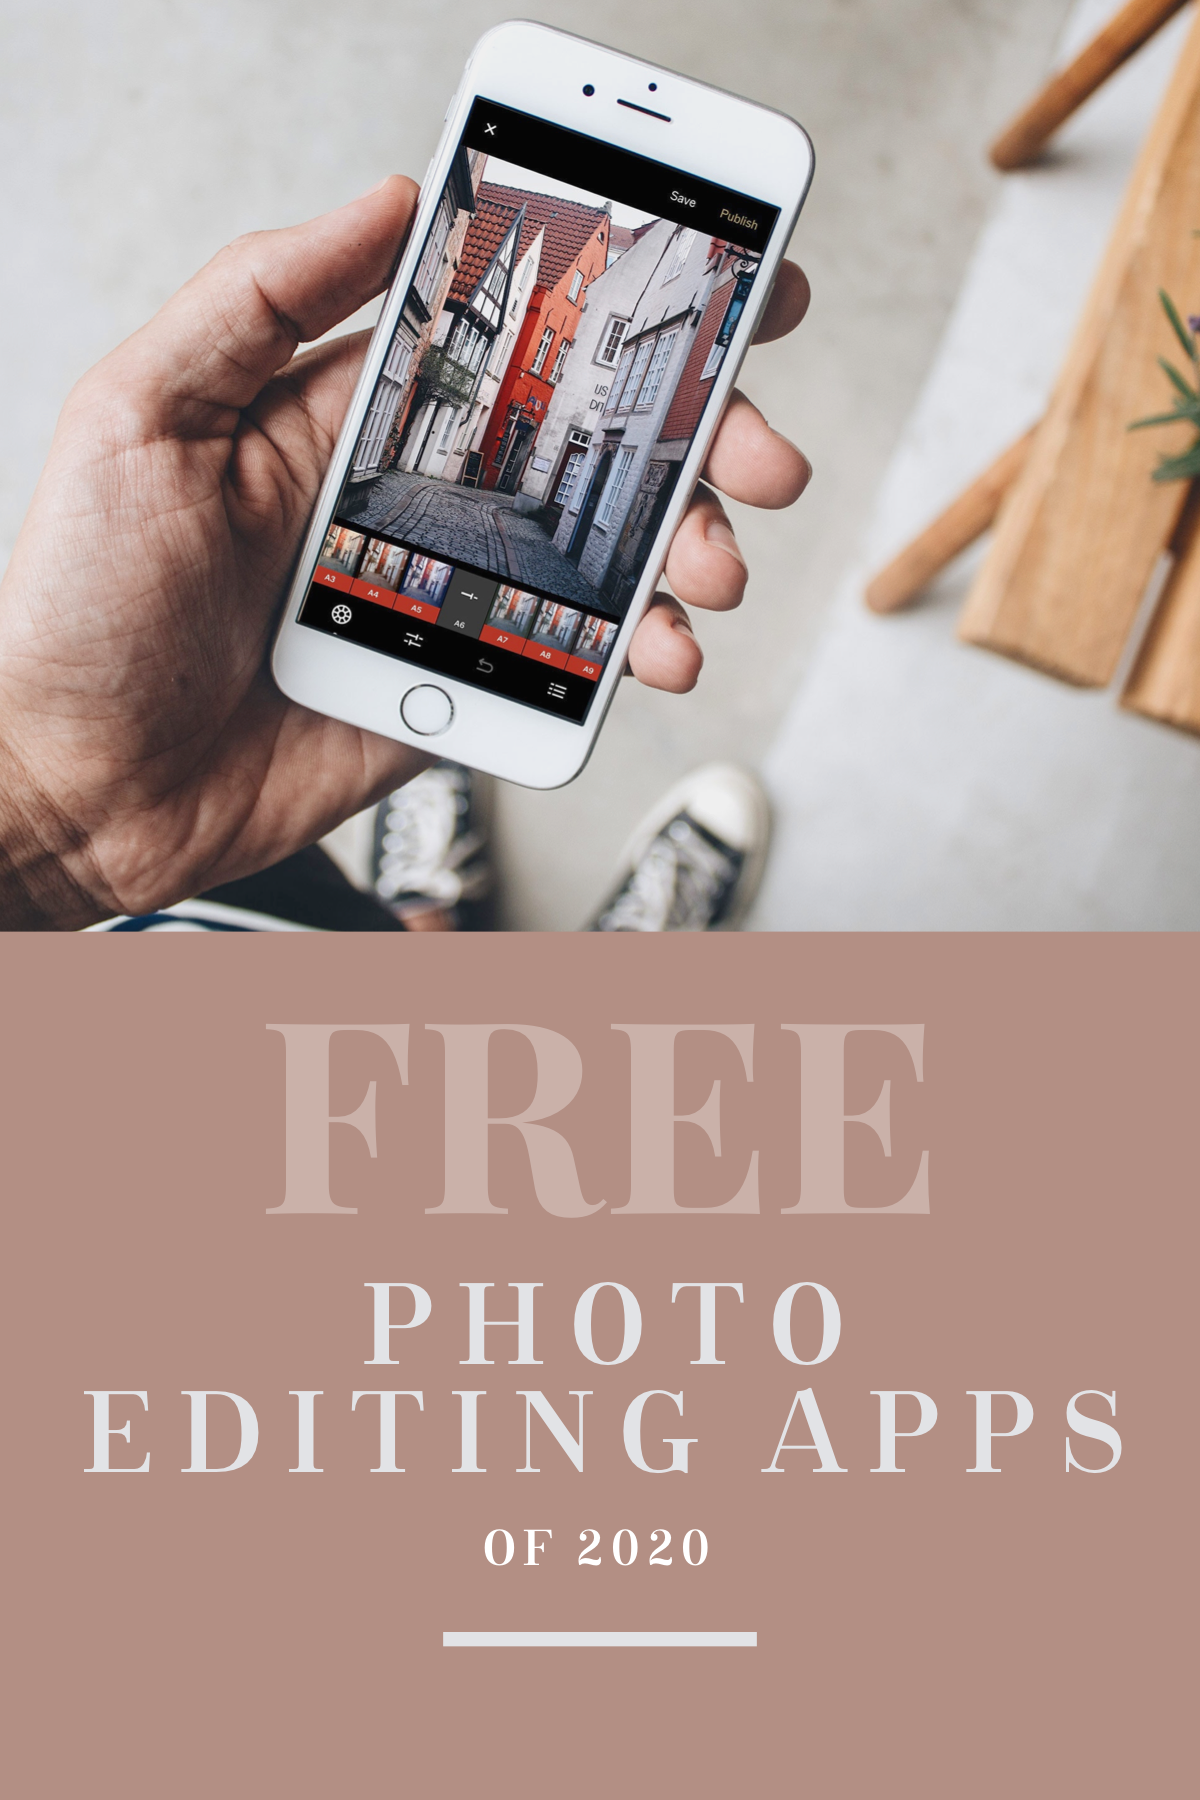 Top Free Photo Editing Apps Of 2020 Photo Editing Apps Free Photo Editing Apps Photo Editing